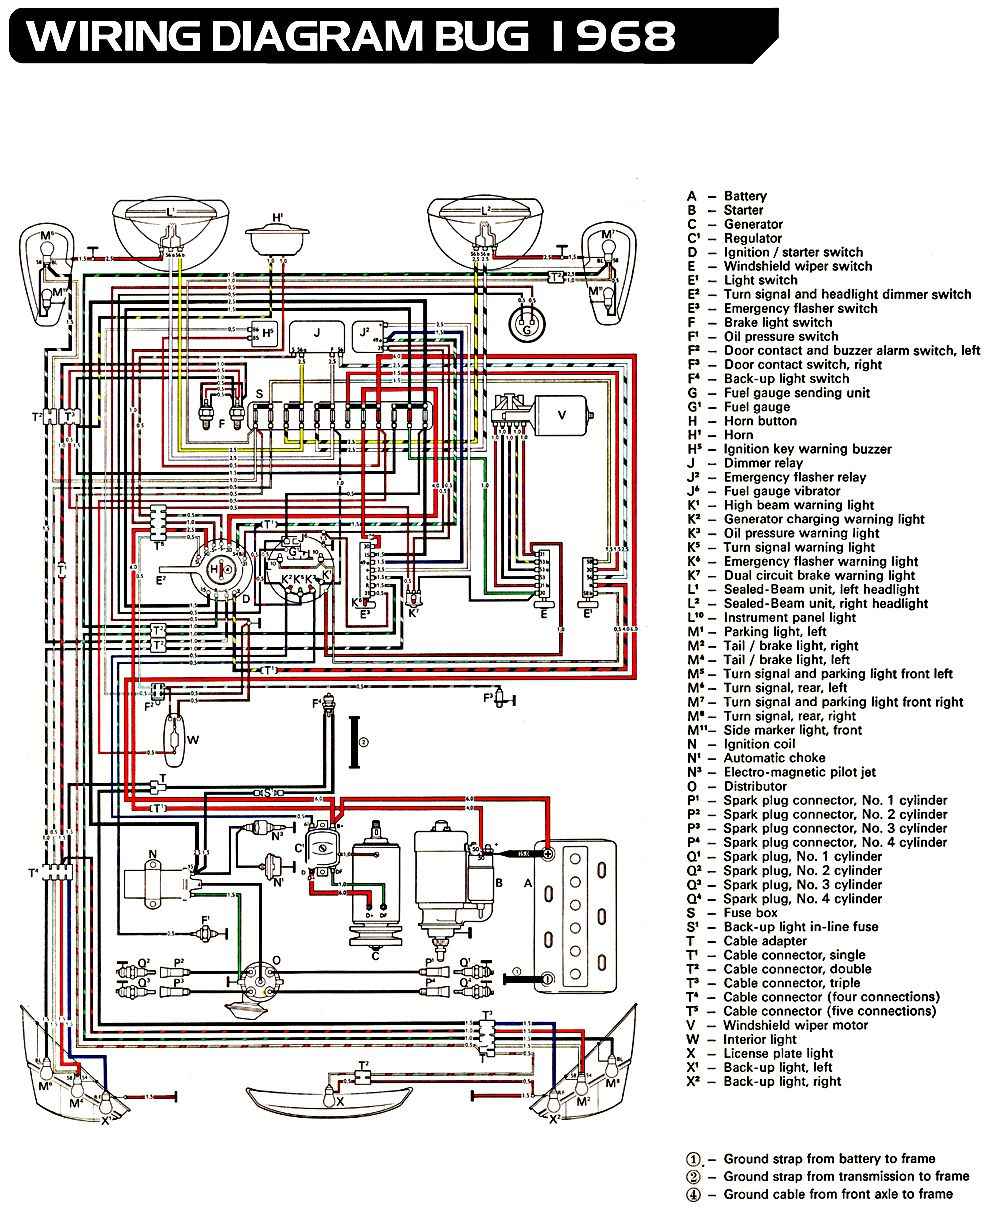 vw bug ignition wiring diagram 73 vw wiring diagram free  [ 996 x 1211 Pixel ]